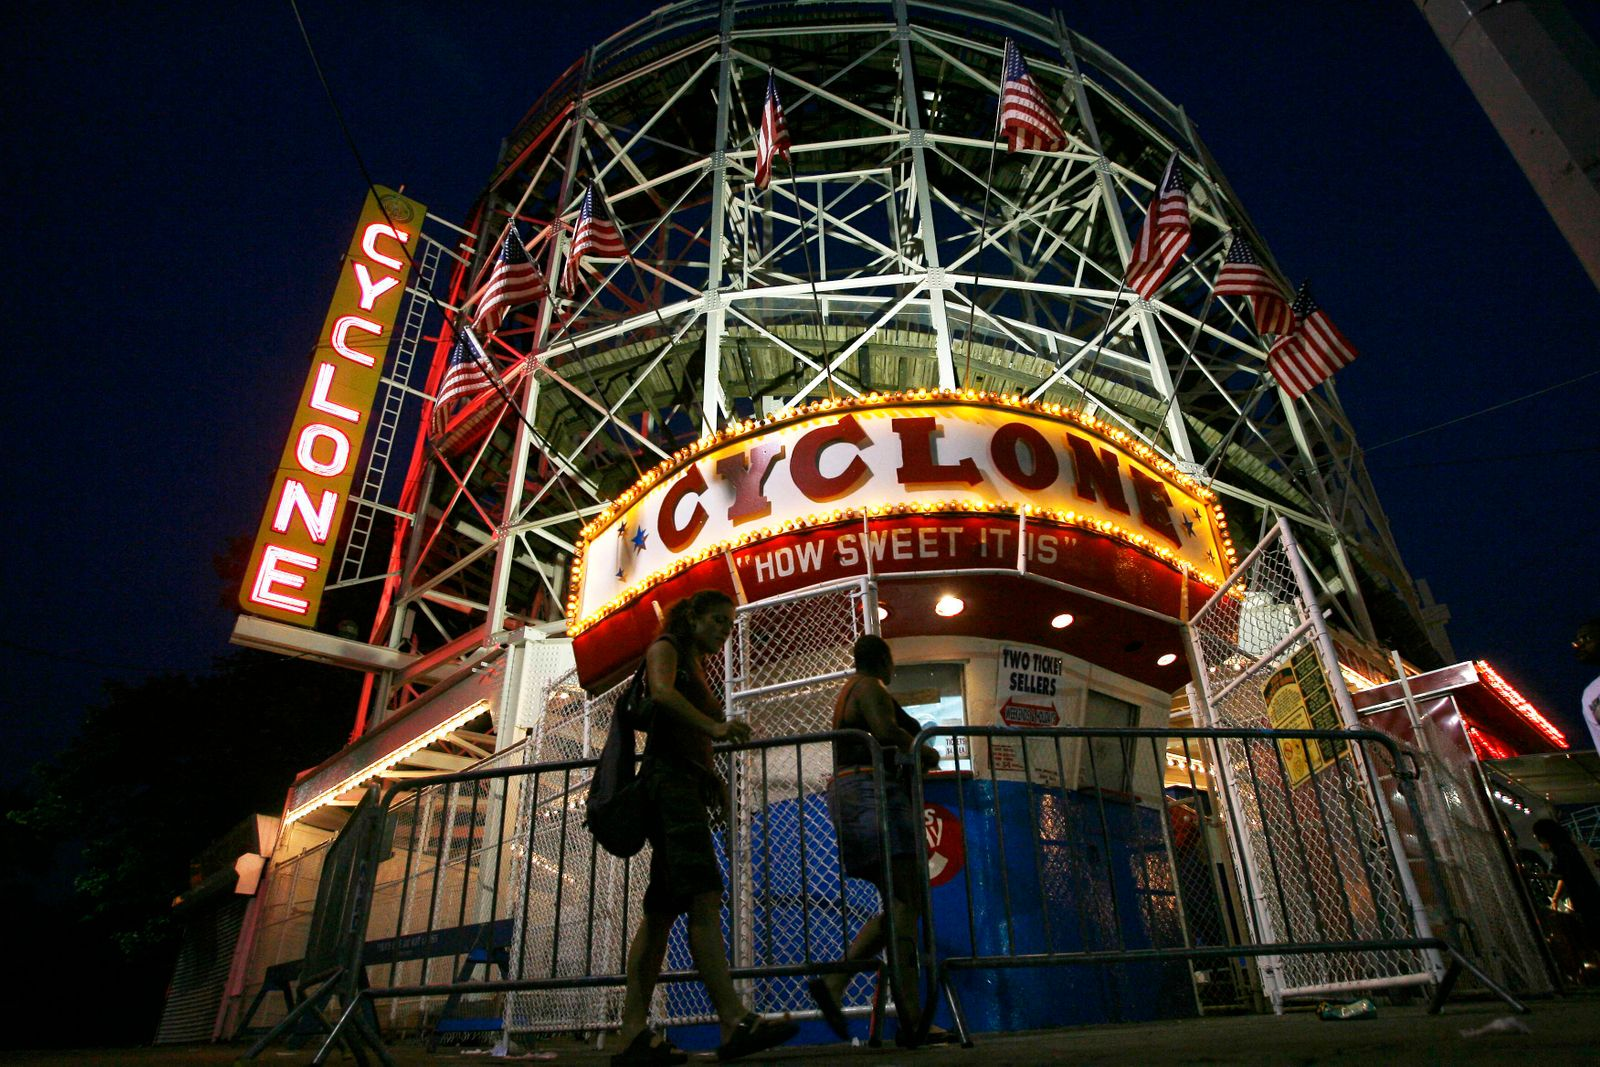 People line up to ride the Cyclone at the Astroland Amusement park in the Coney Island neighborhood of New York